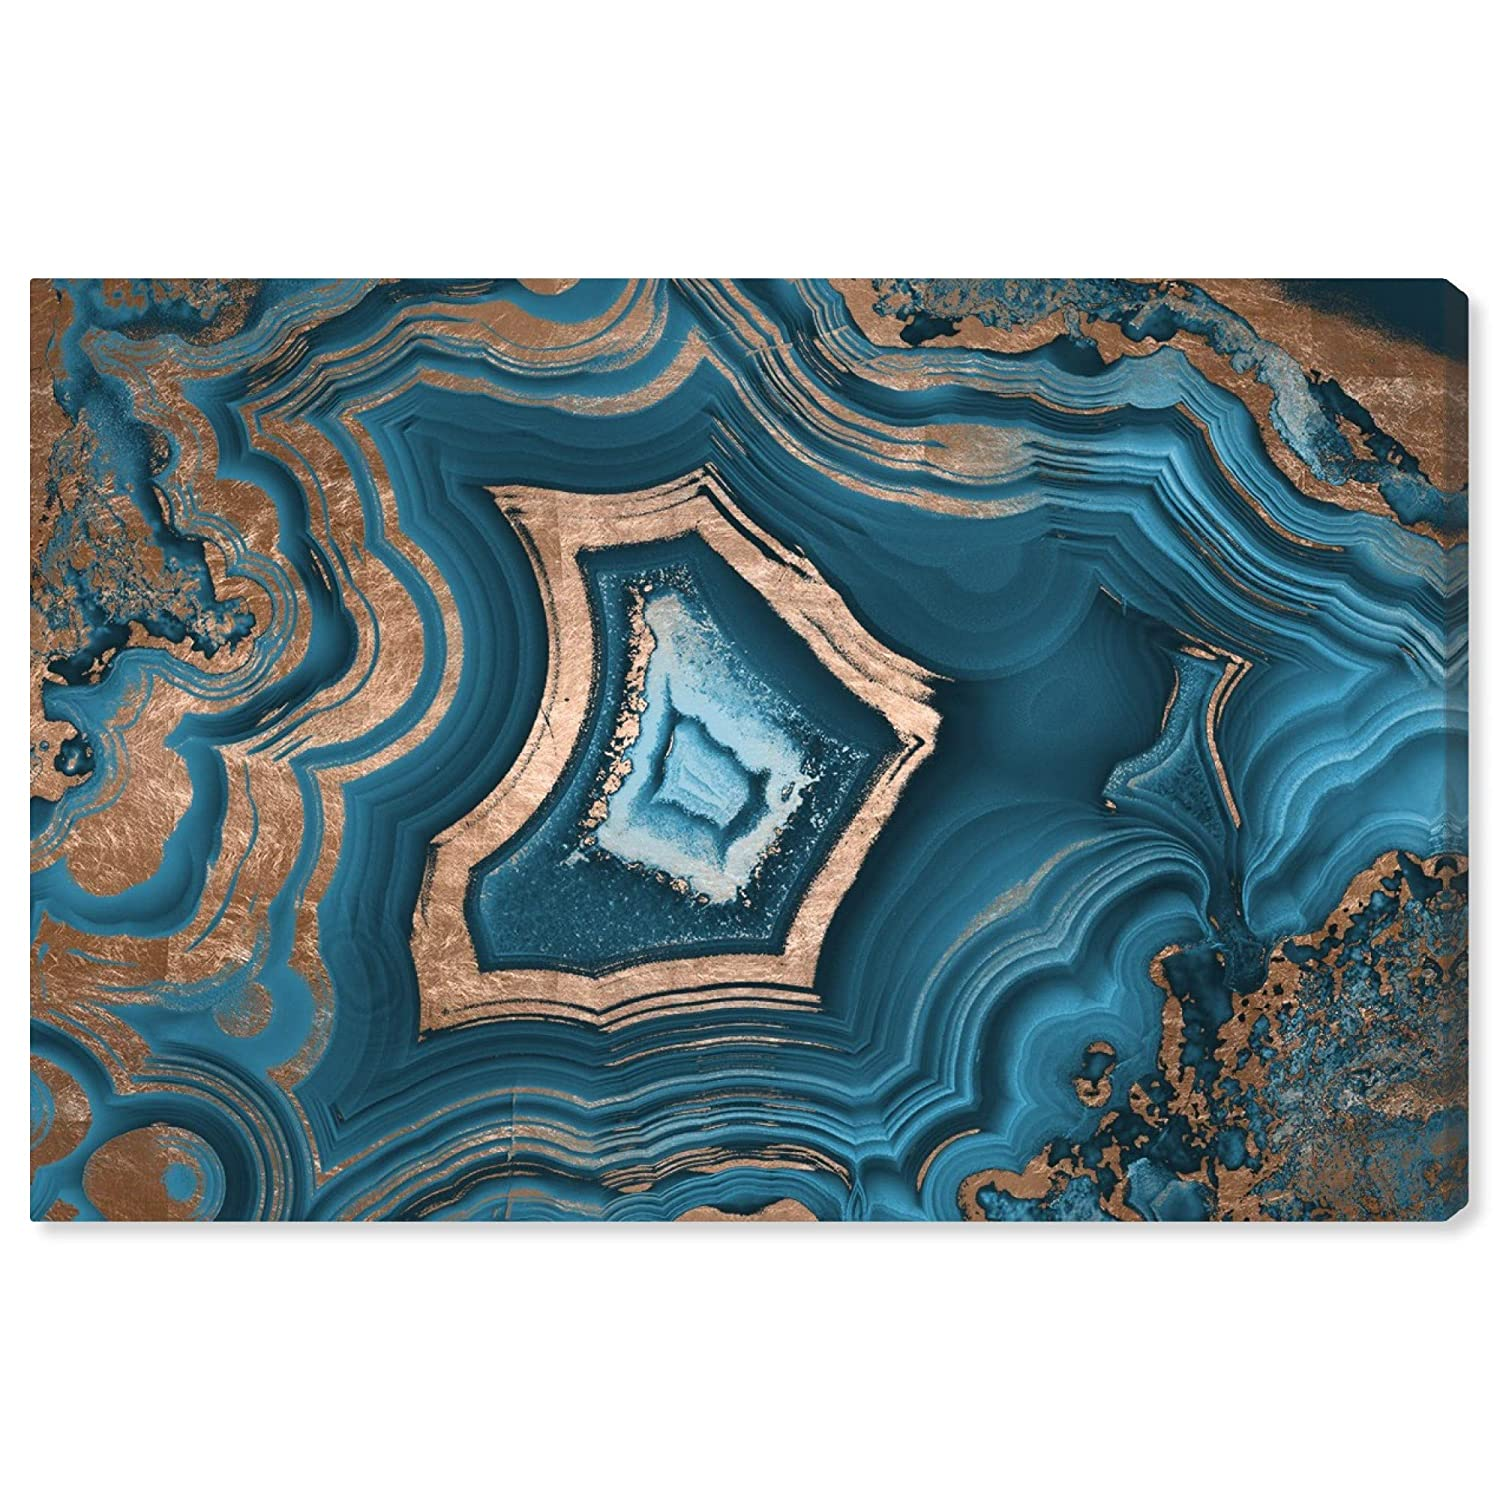 """The Oliver Gal Artist Co. Abstract Wall Art Canvas Prints 'Dreaming About You Geode' Home Décor, 15"""" x 10"""", Blue, Gold"""